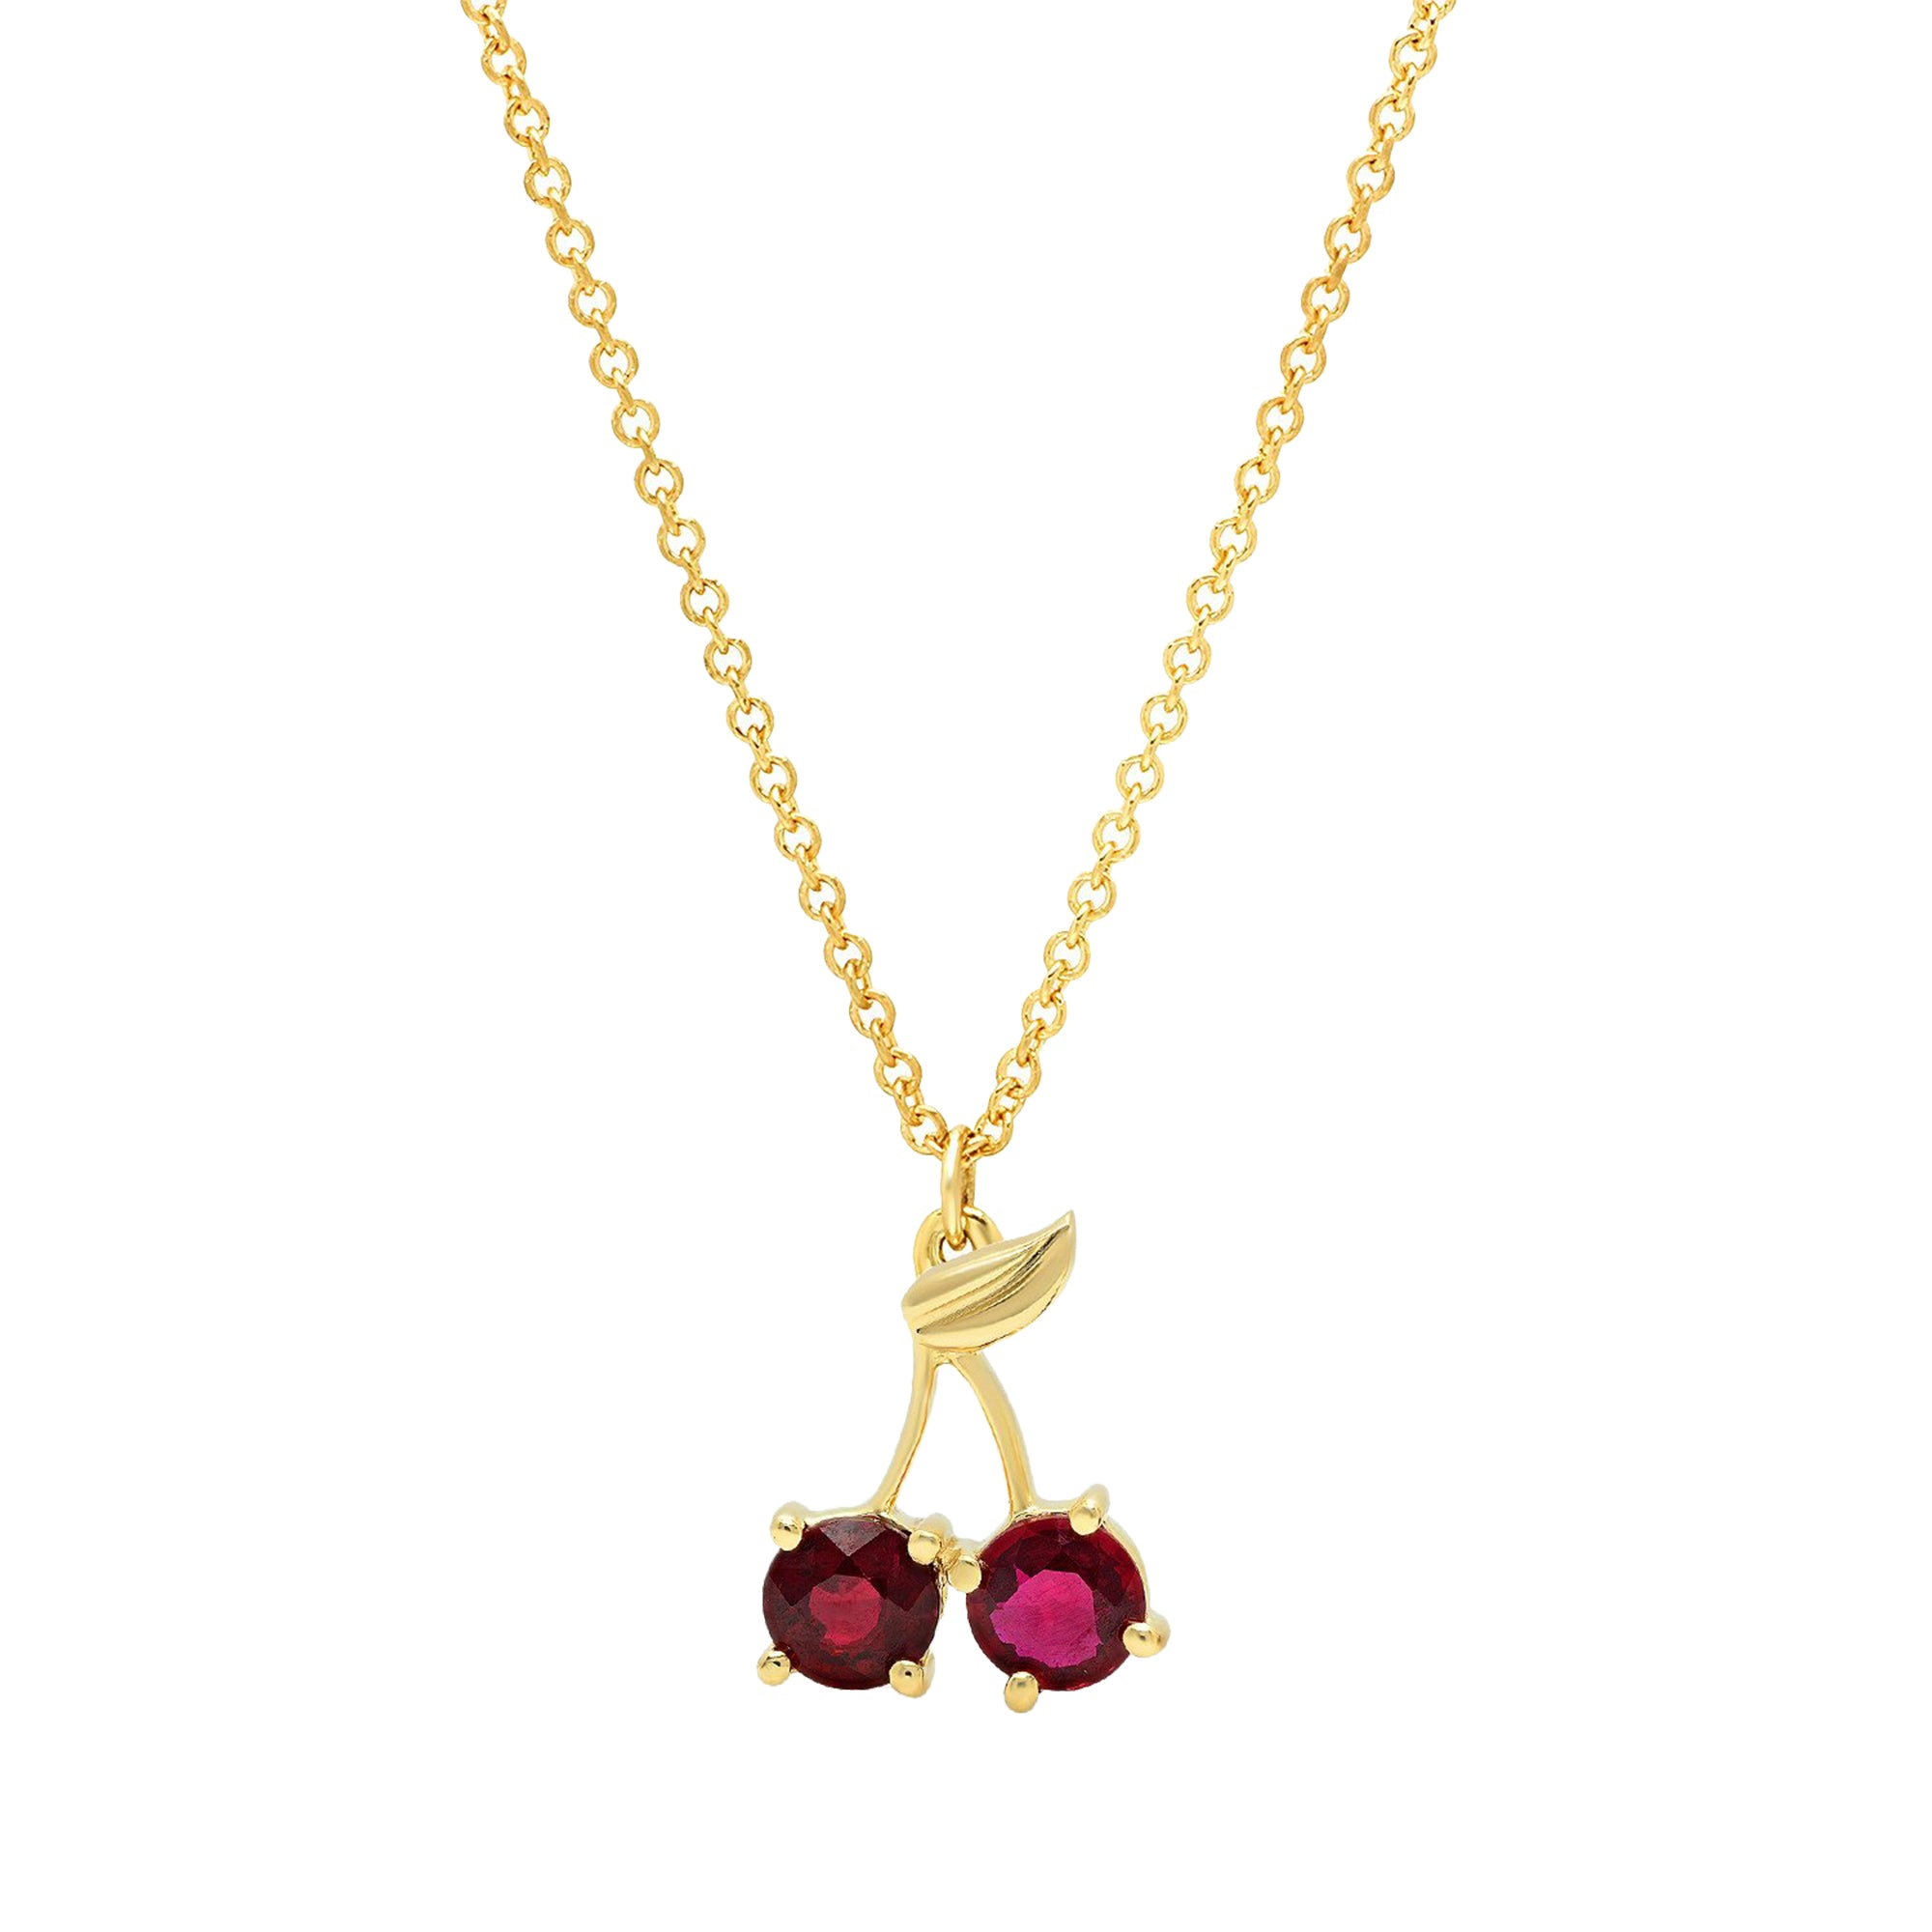 Gold Ruby Cherry Necklace by Established for Broken English Jewelry